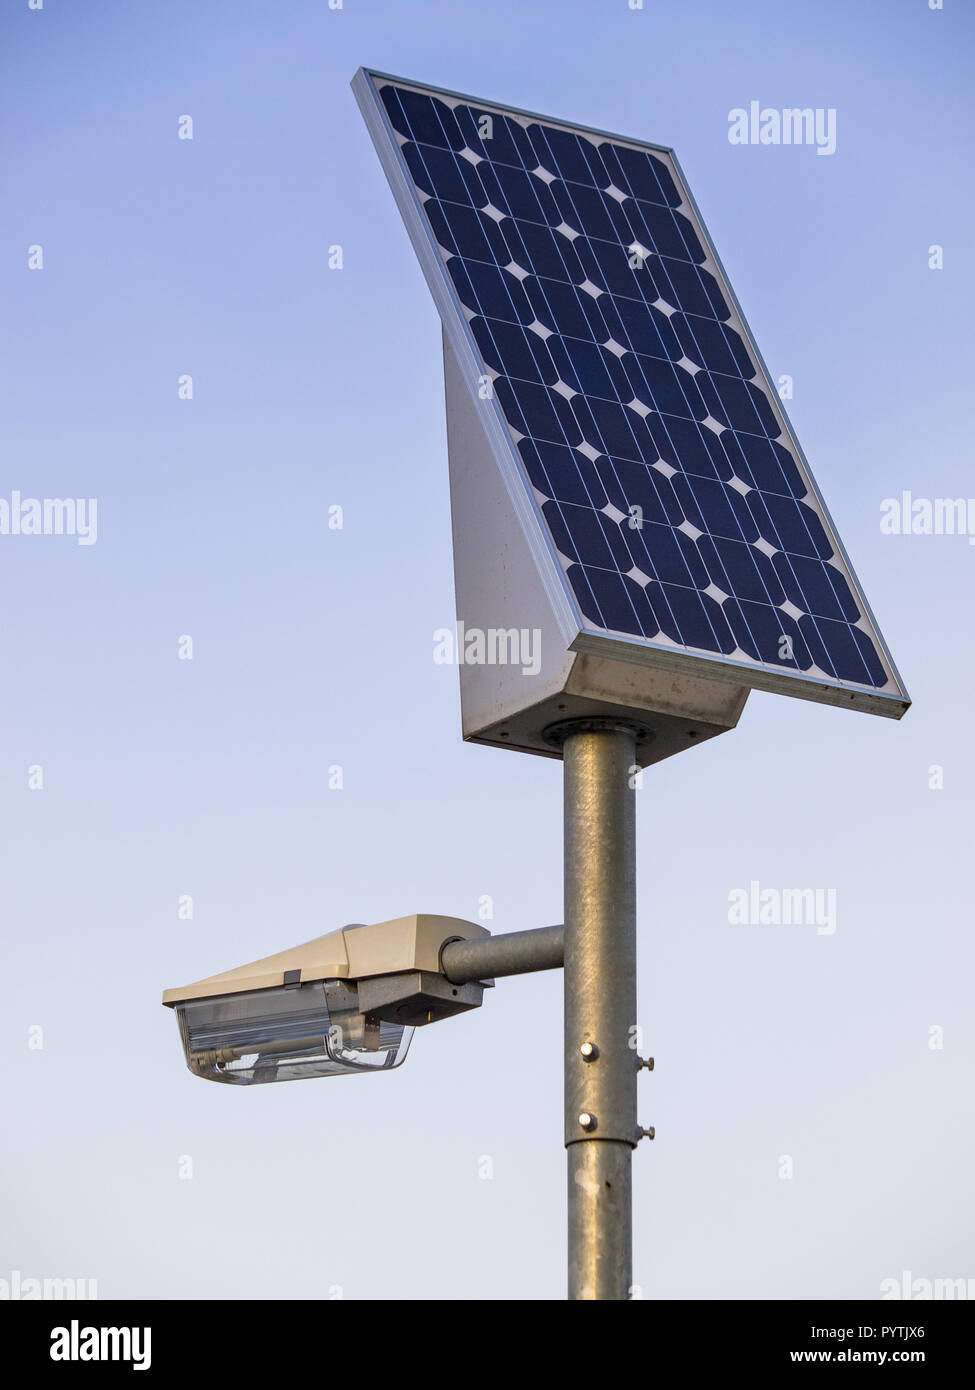 solar powered street lantarn under blue sky Stock Photo